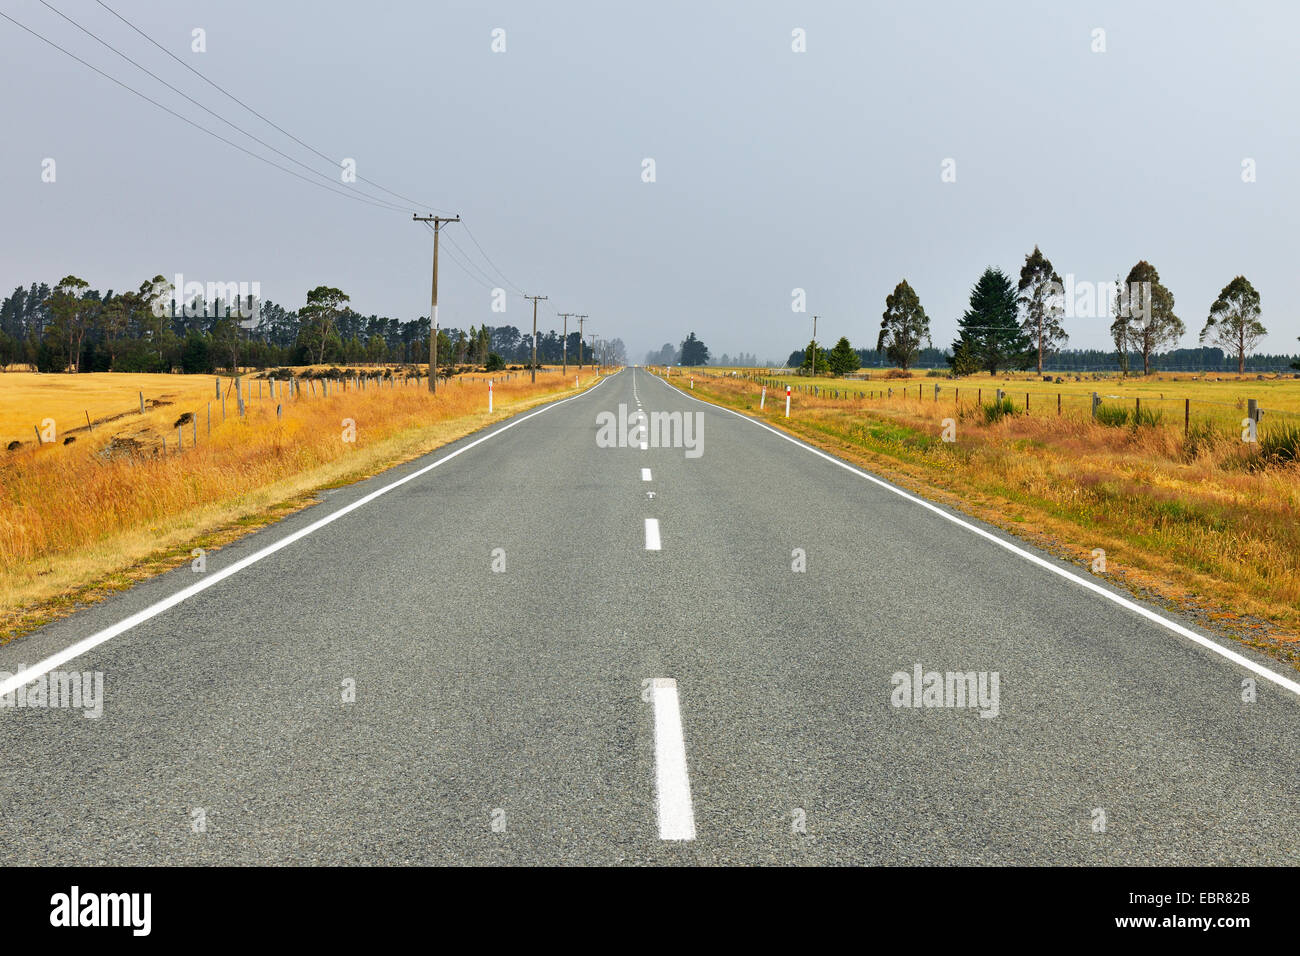 country road in the summer, New Zealand, Southern Island, South Island, Ryal Bush - Stock Image